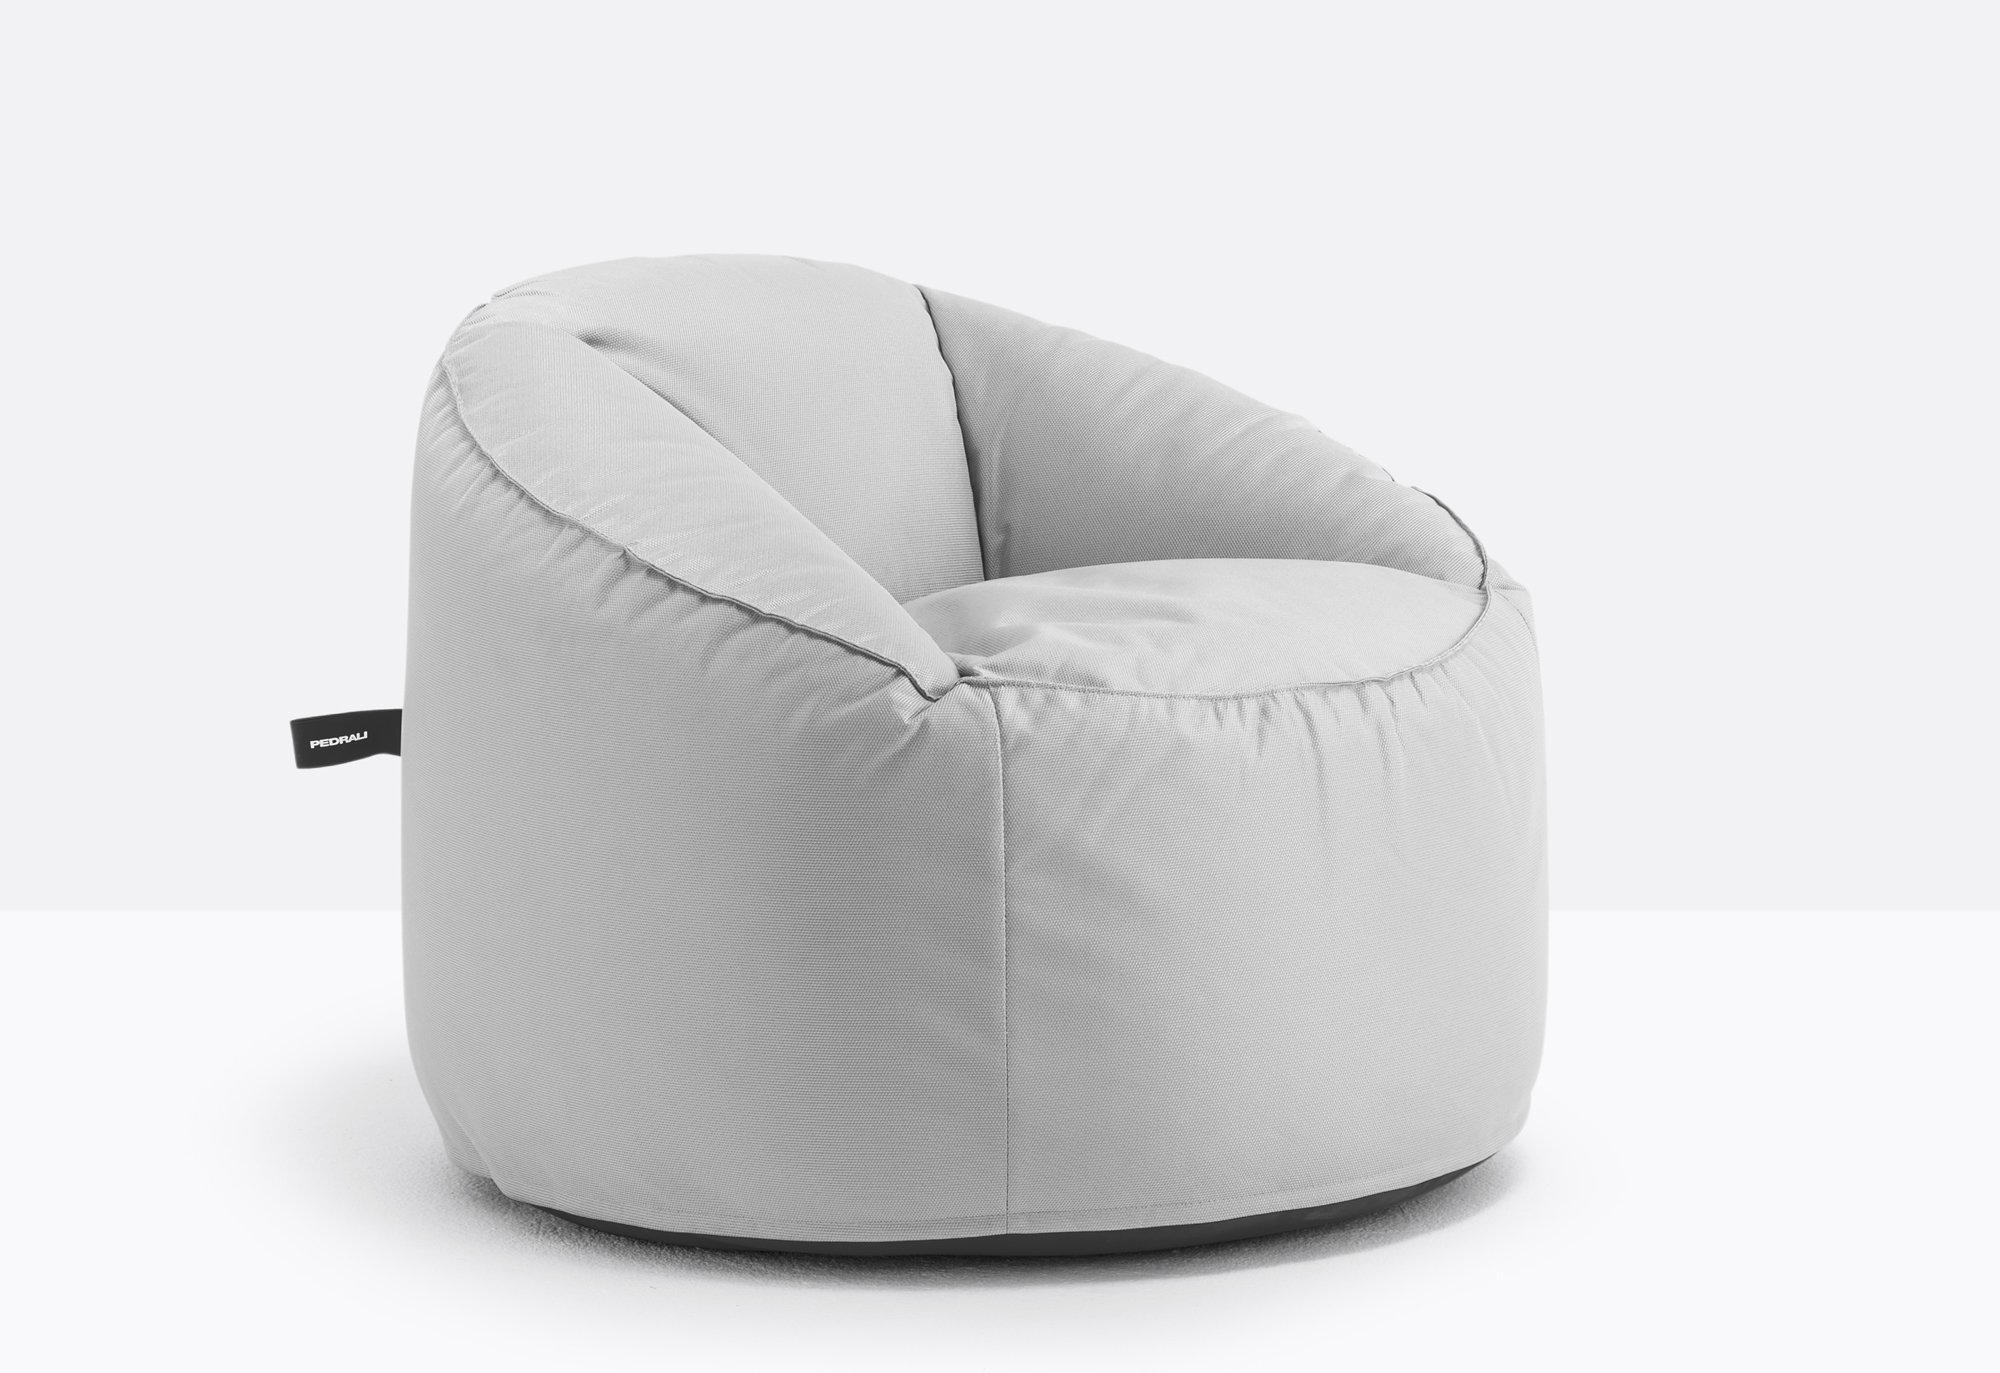 Island Armchair lounge from Pedrali, designed by CLAUDIO DONDOLI - MARCO POCCI